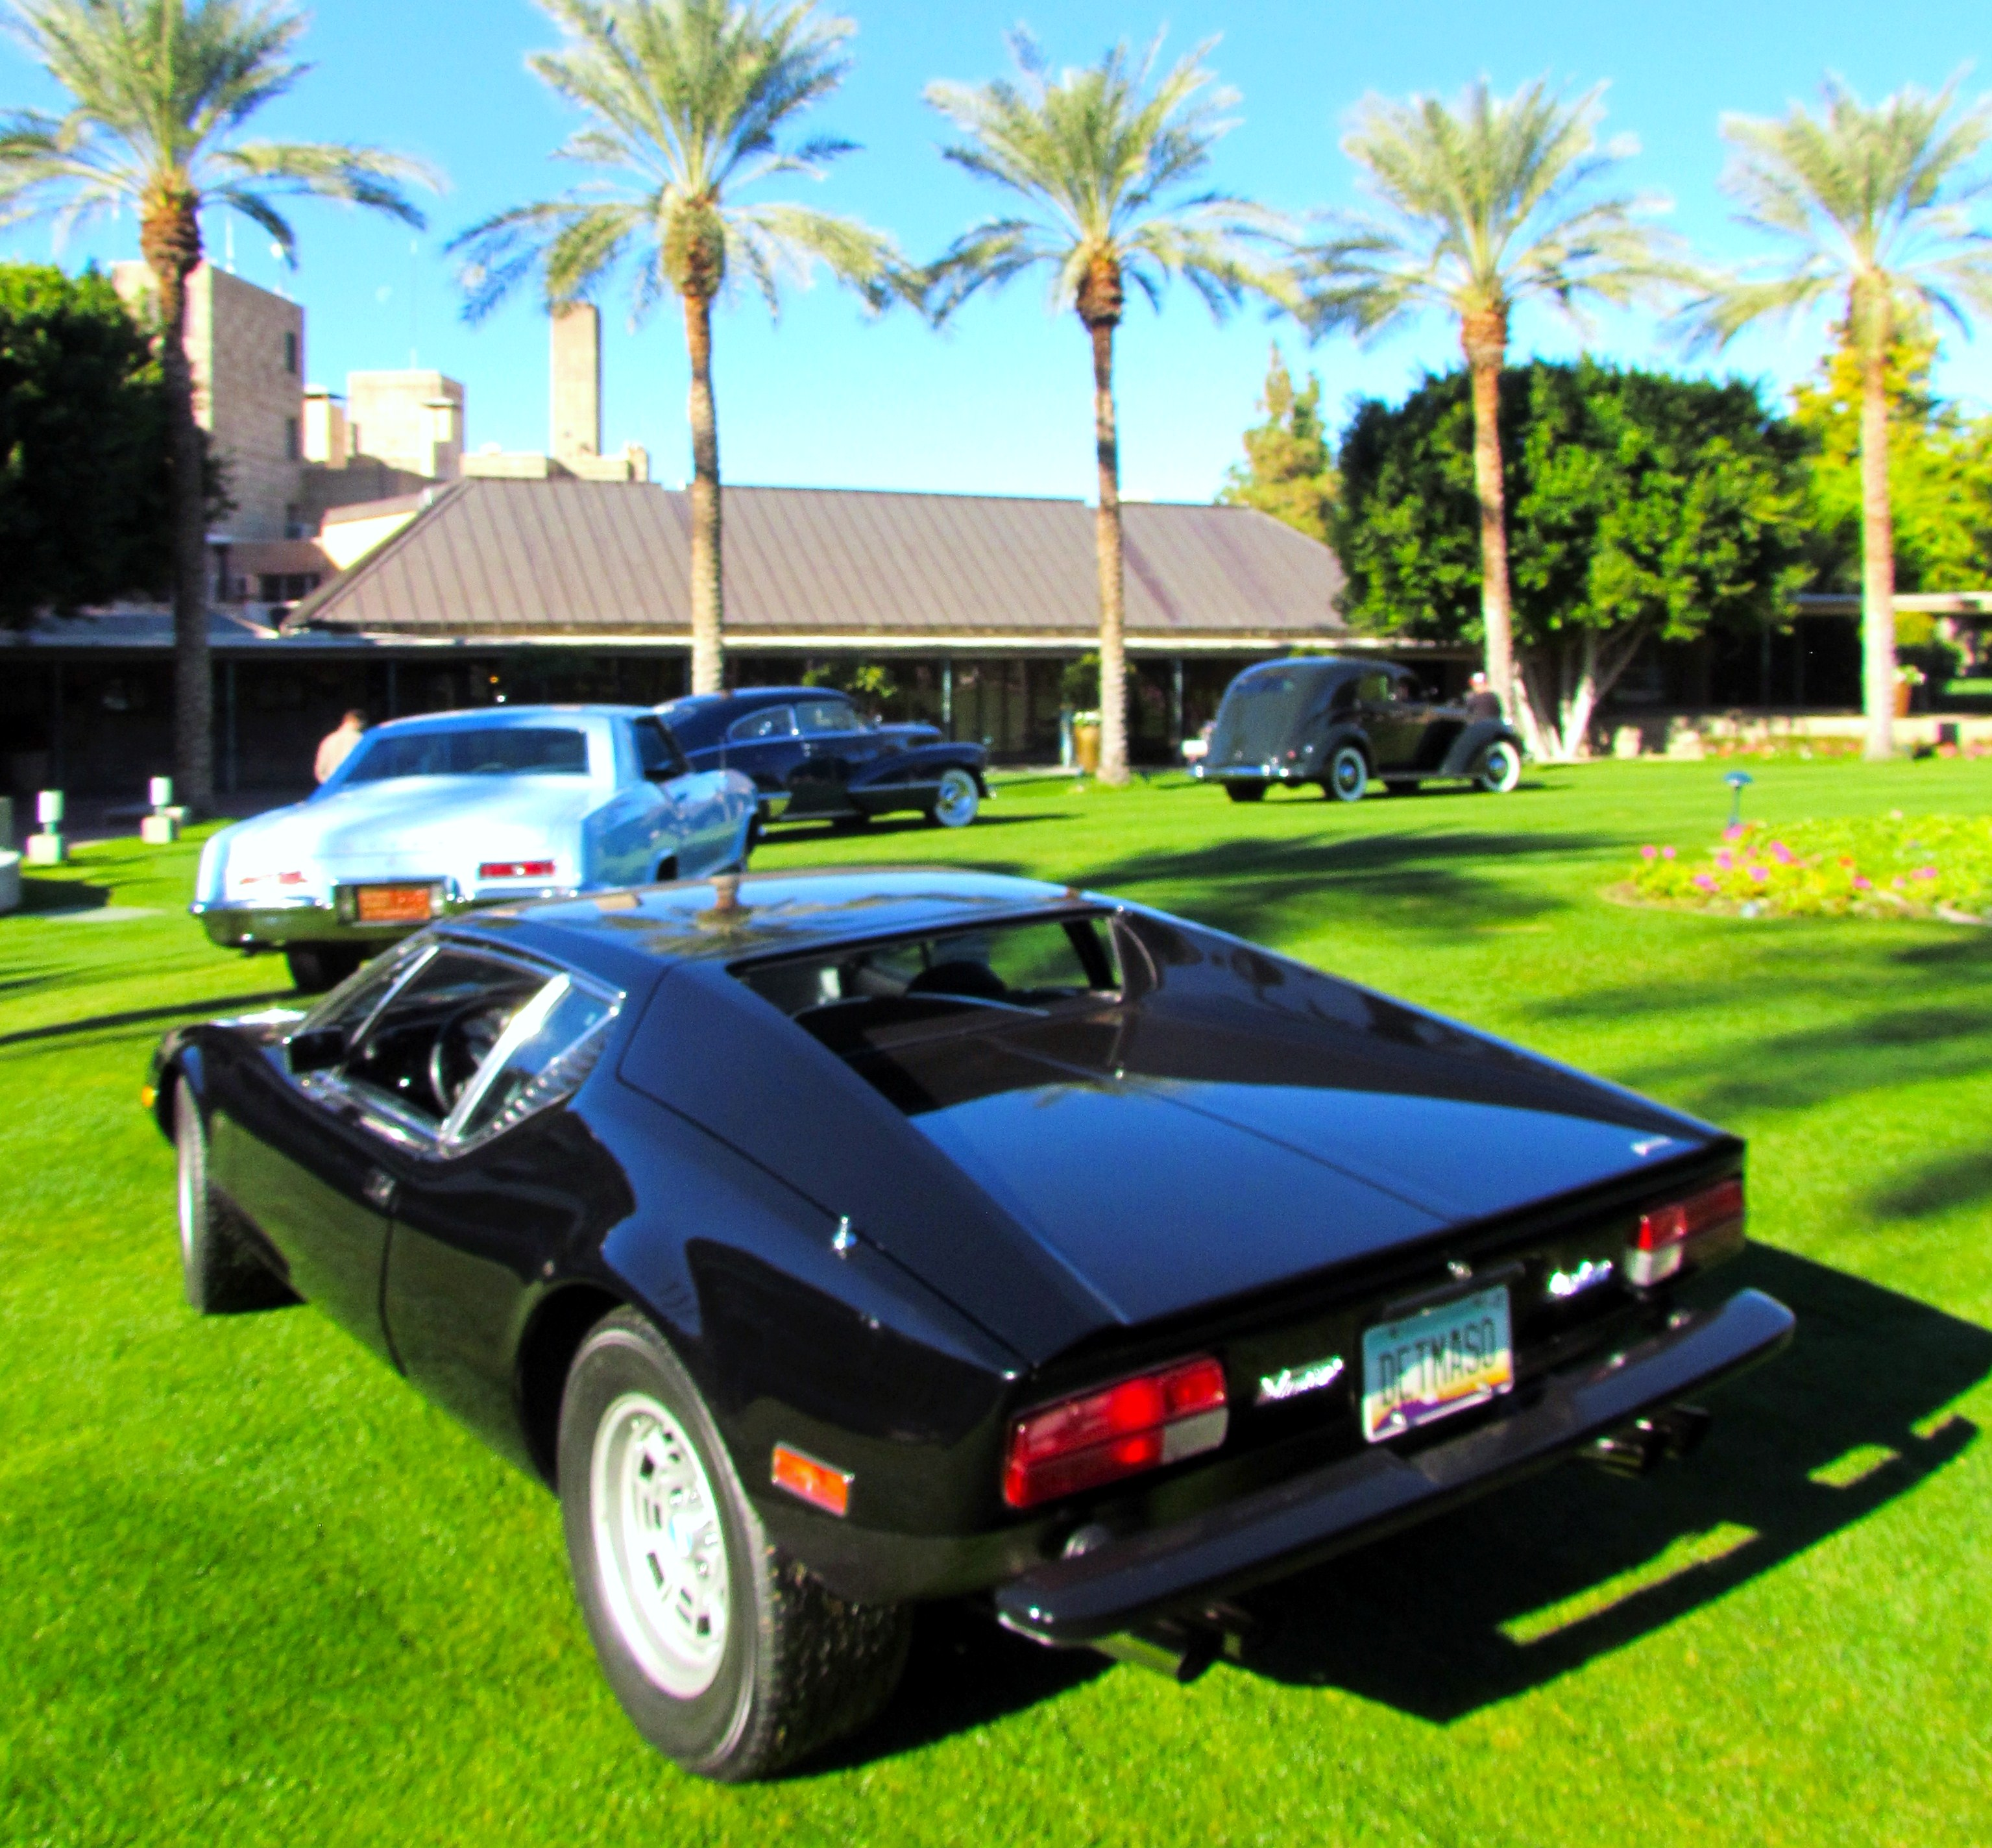 Vintage Cars On The Grass At The Biltmore In Arizona